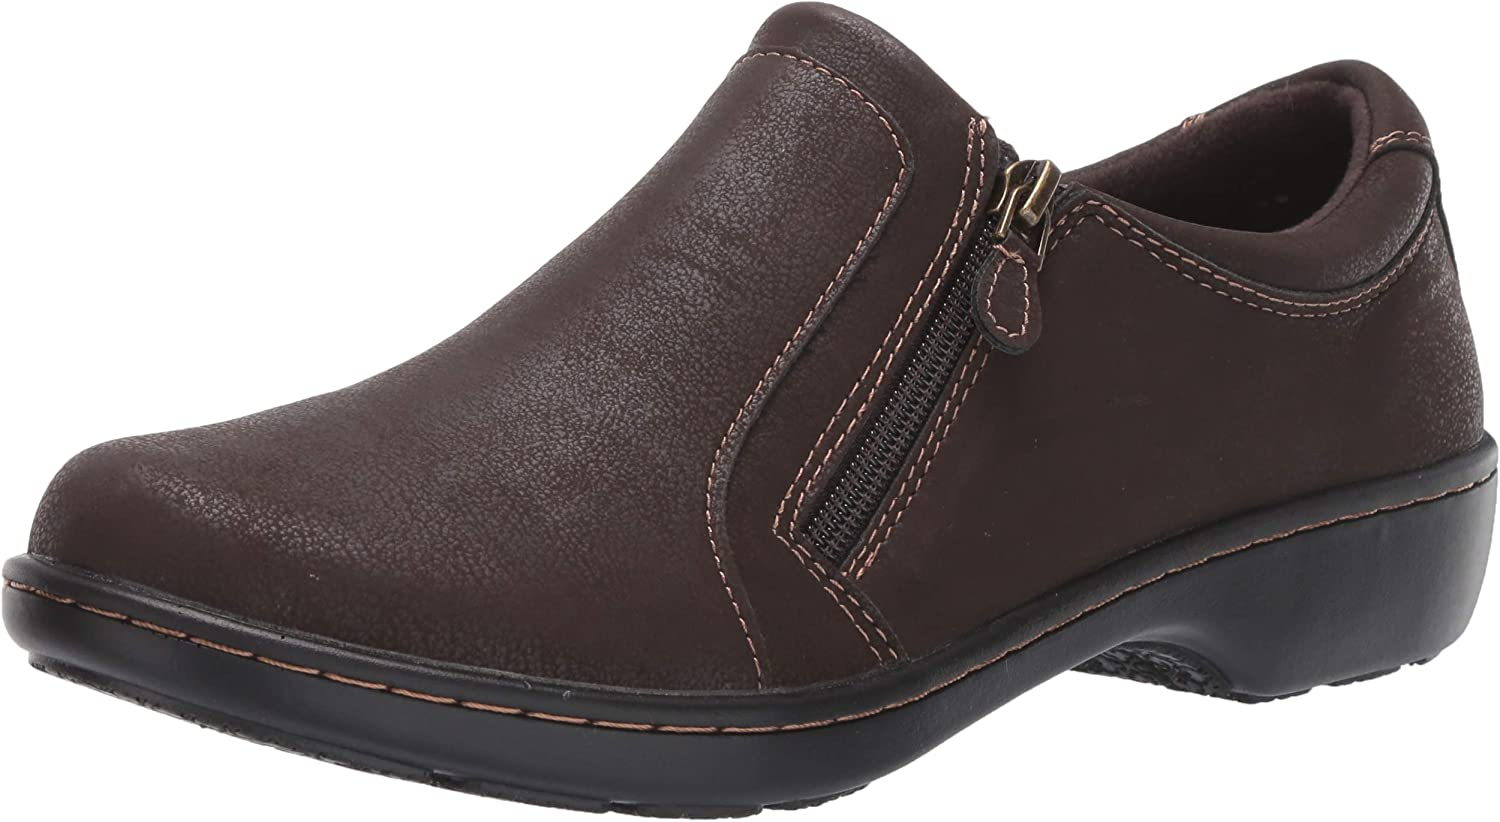 Cheap Cheap mail order shopping bargain Eastland Women's Loafer Vicky